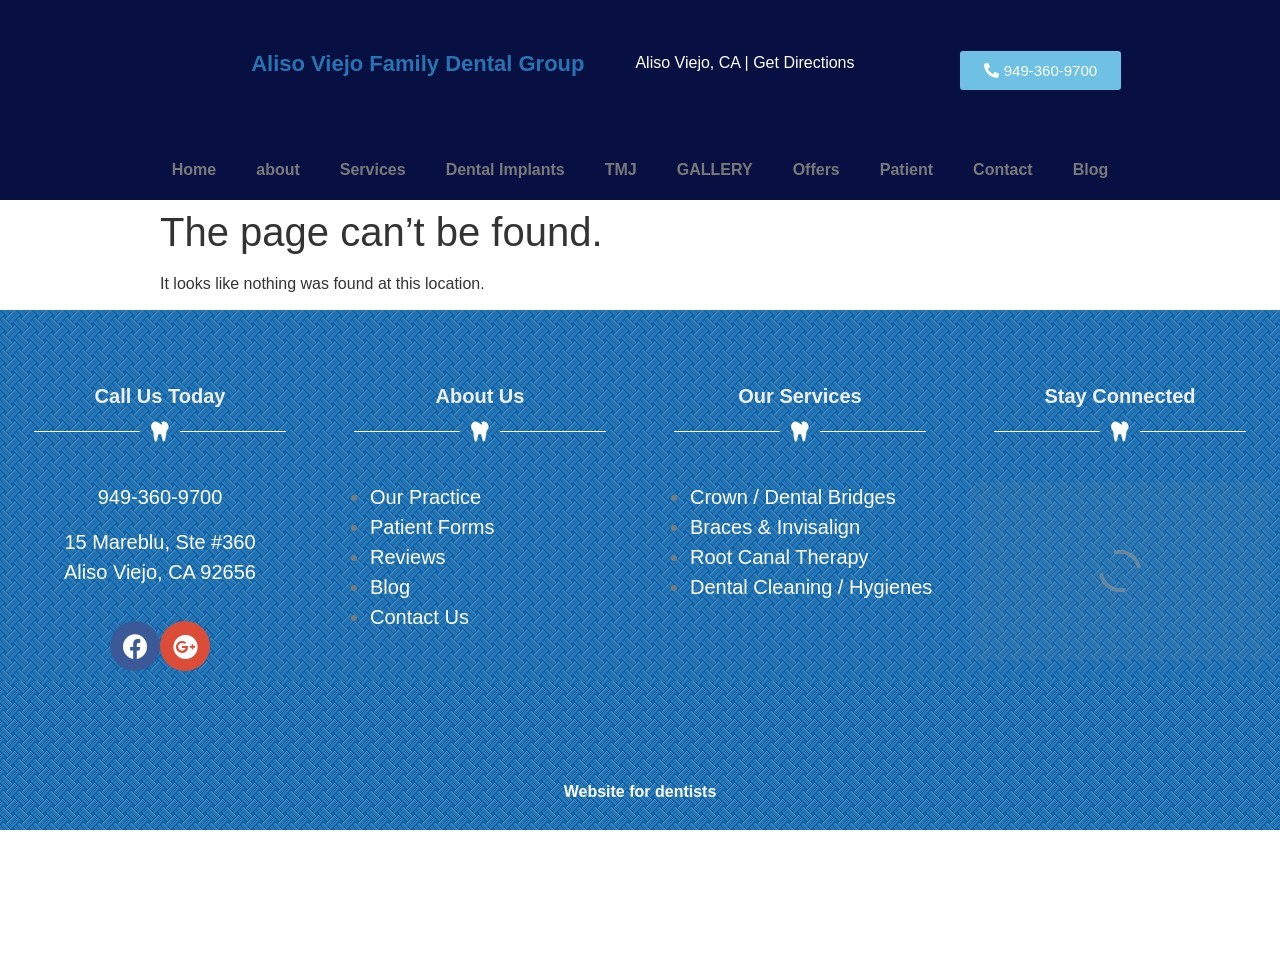 avfdentalgroup.com/homepage/ screenshot